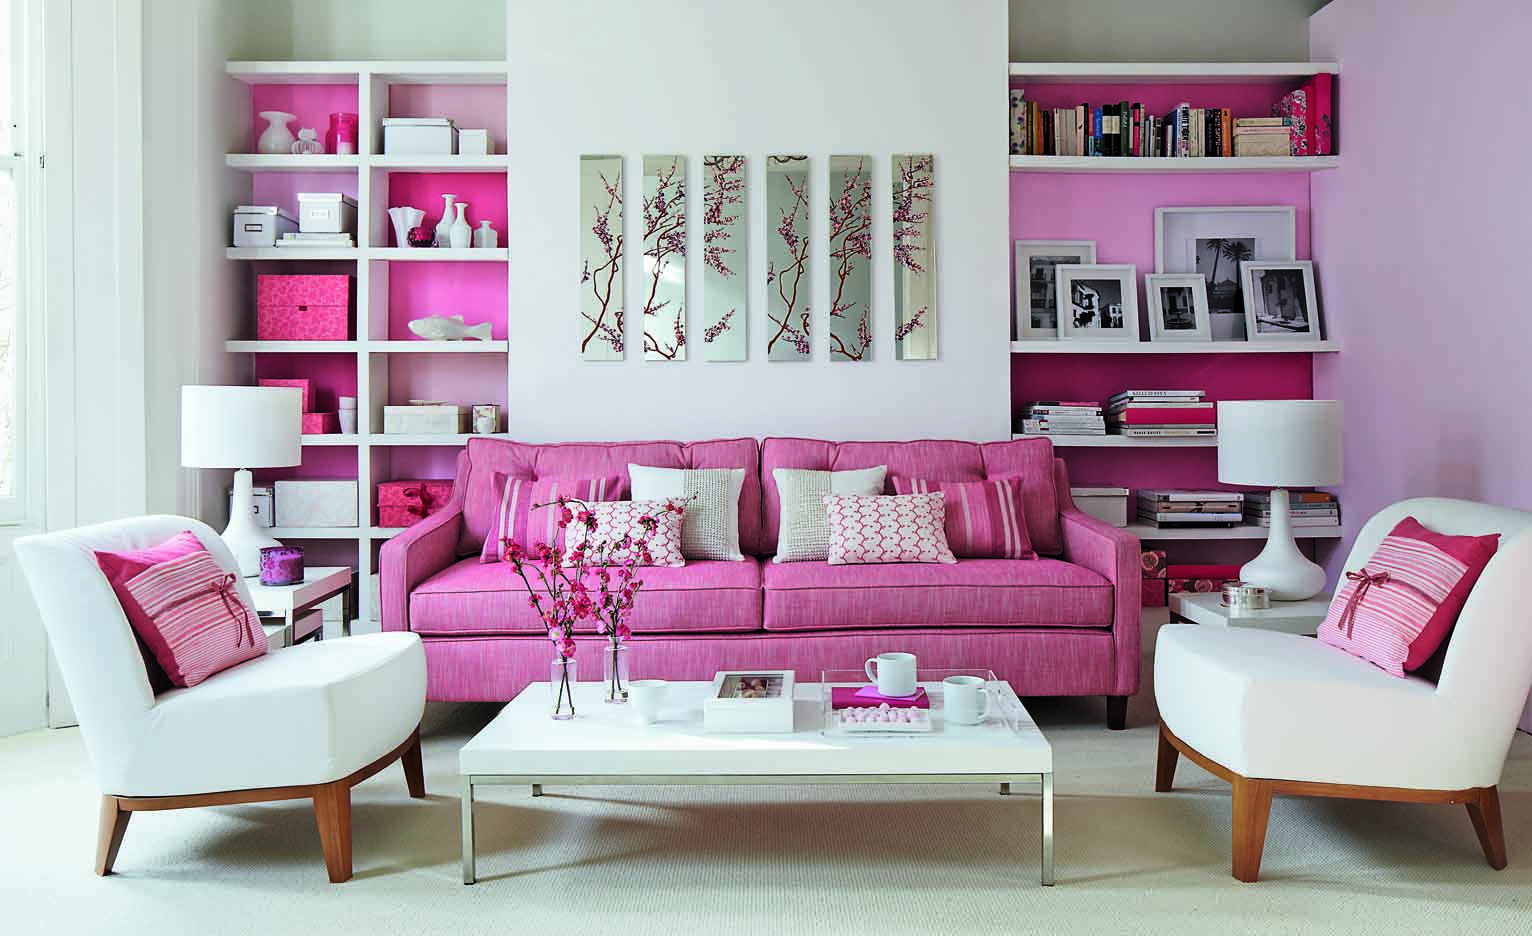 Pink living room set 1000 ideas about pink living rooms on pinterest pink walls living room and homes